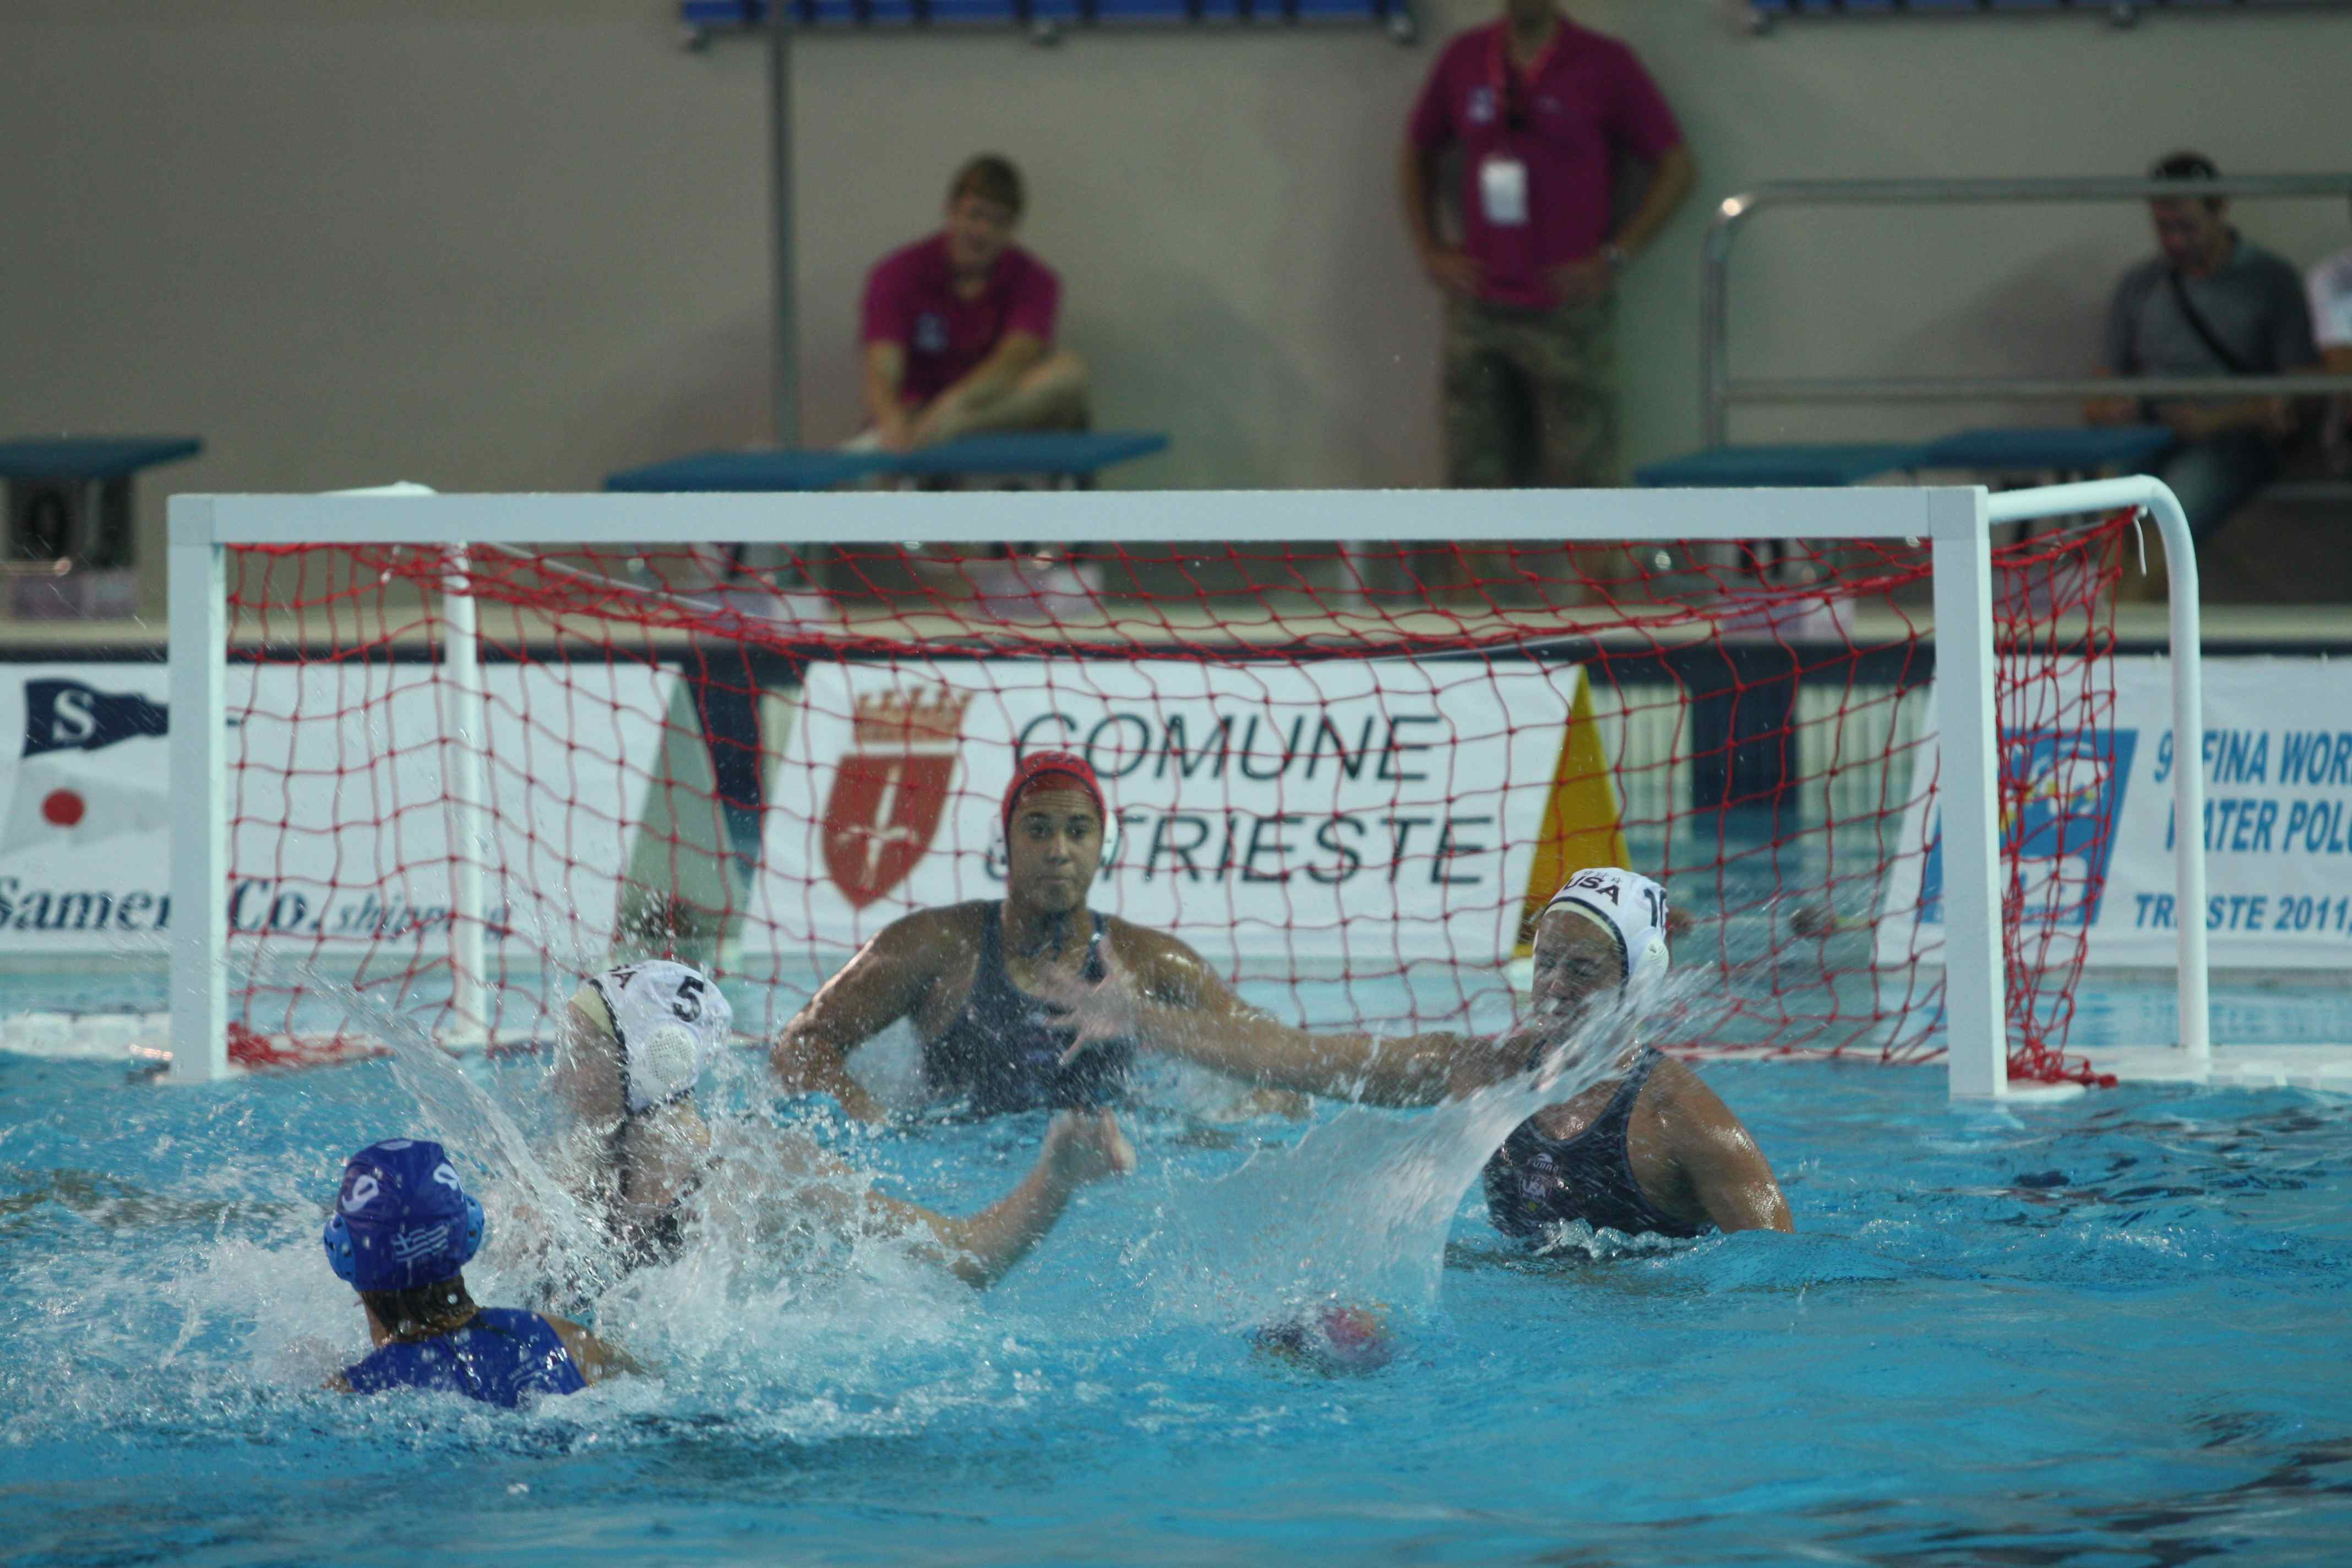 Goalie Sami Hill and Kiley Neushul, right, defend during match against Greece at the FINA Women's Junior World Championships in Italy. (Photo by Peter Neushul)